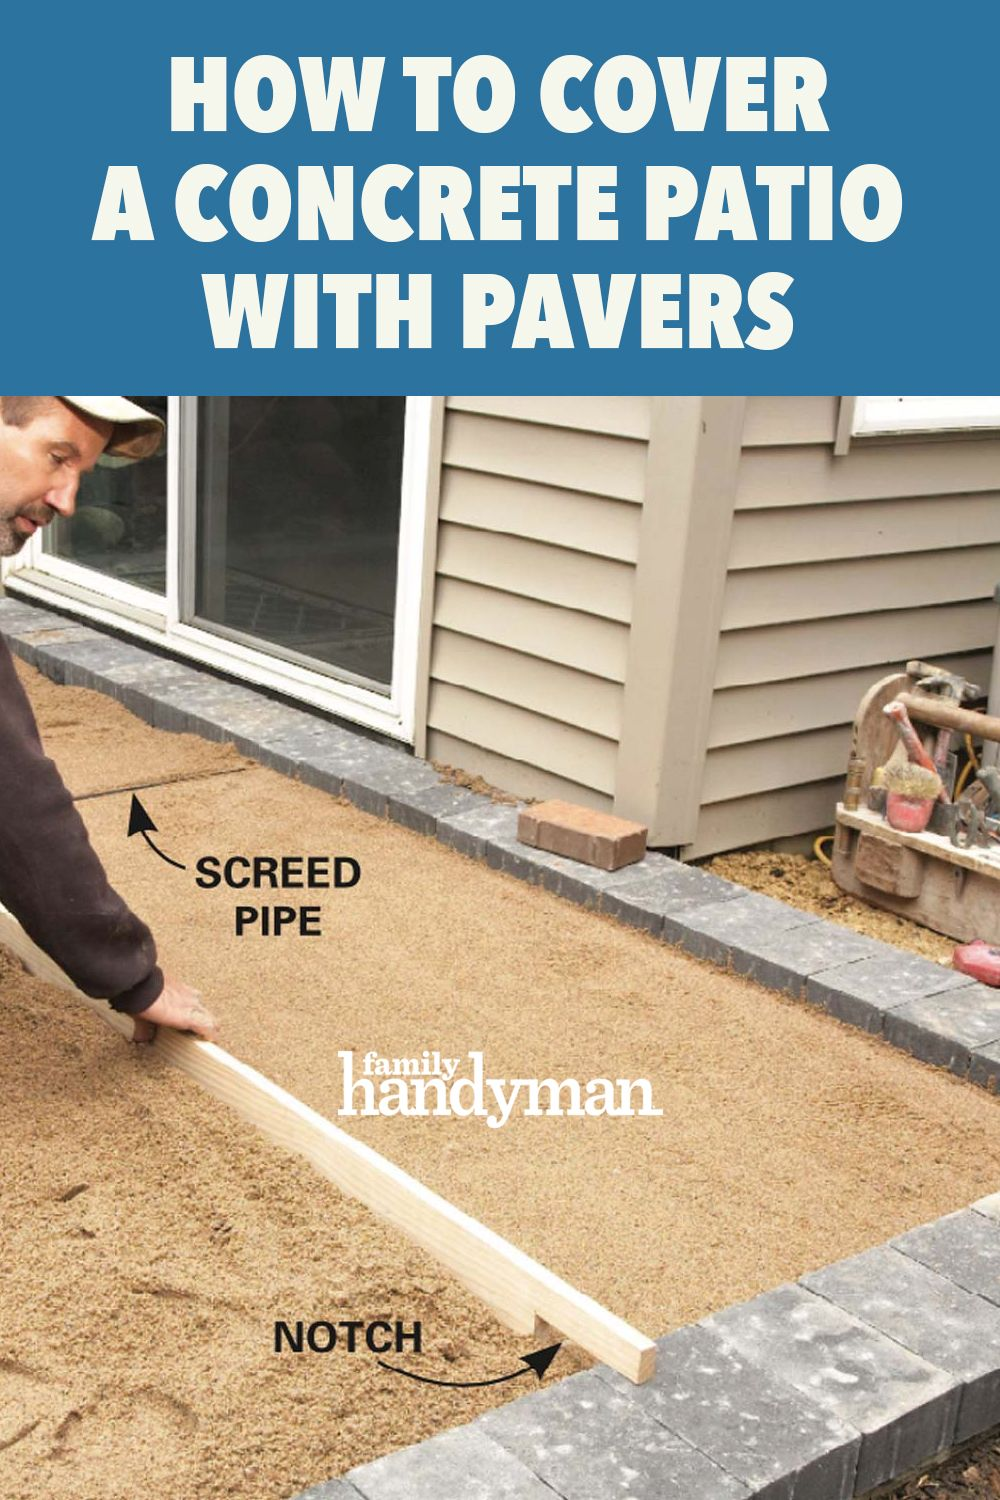 How To Cover A Concrete Patio With Pavers In 2020 Concrete Patio Paver Patio Concrete Paver Patio